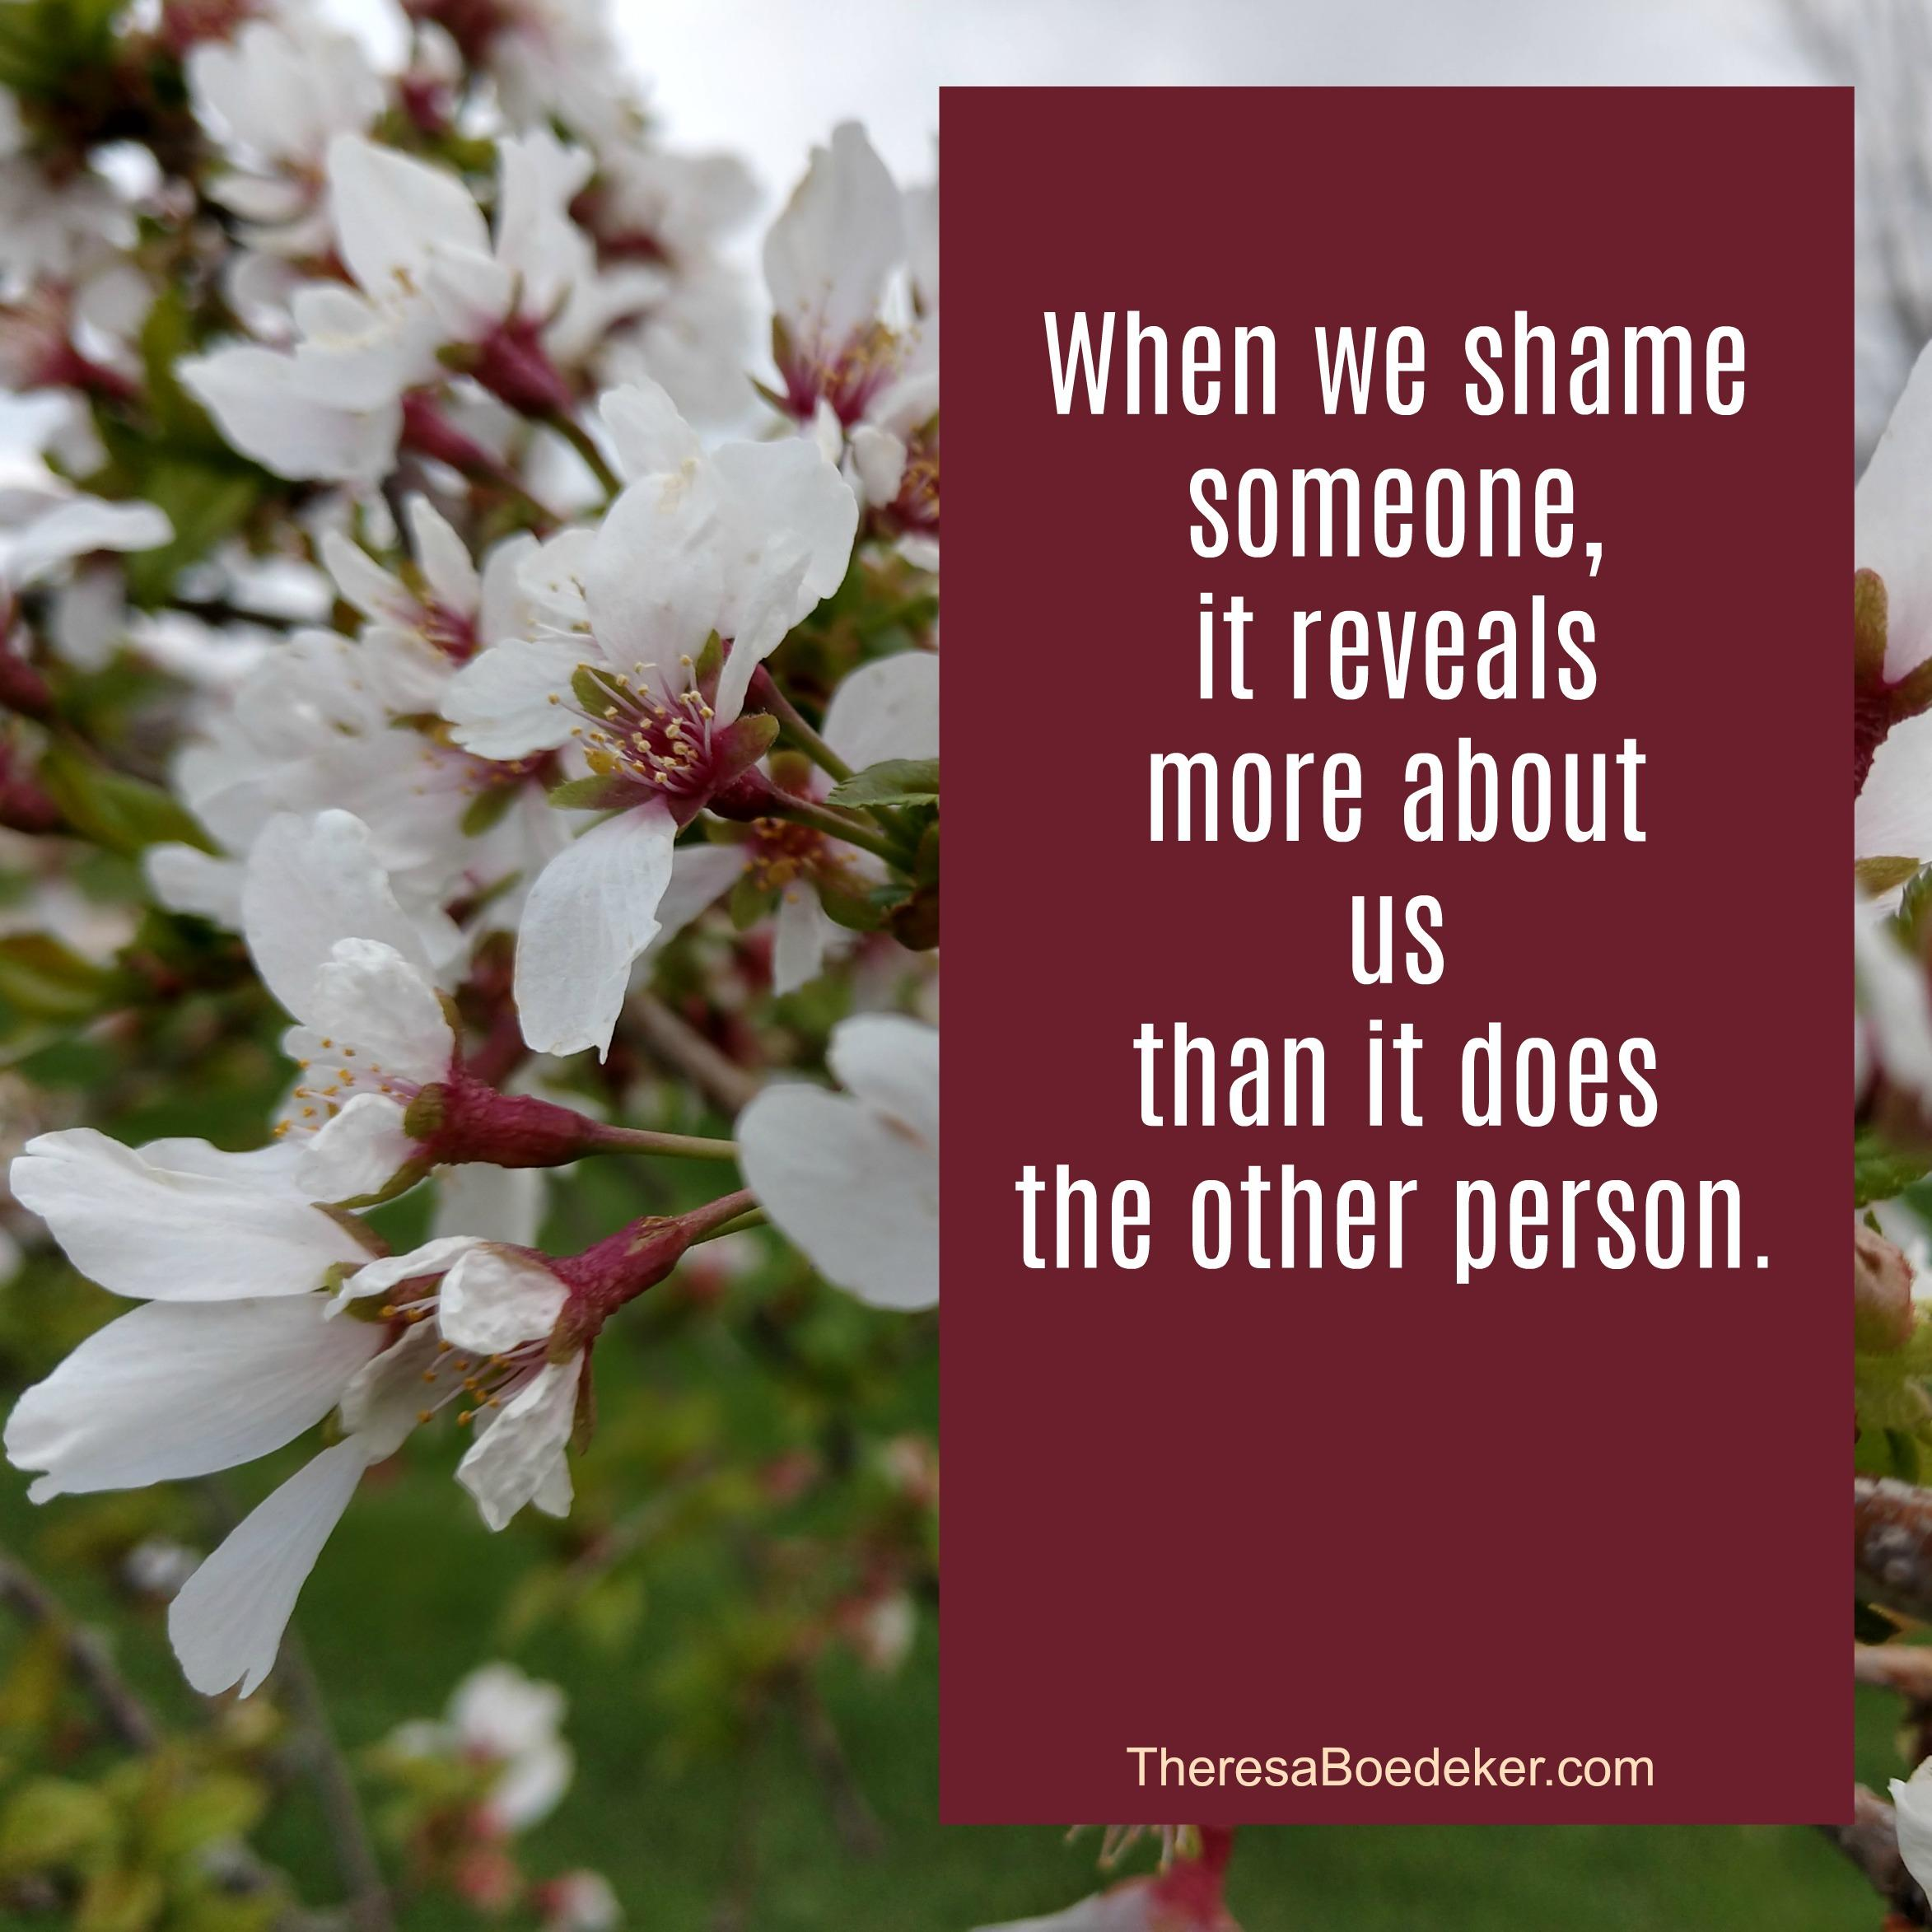 What are the 6 reasons we shame others?